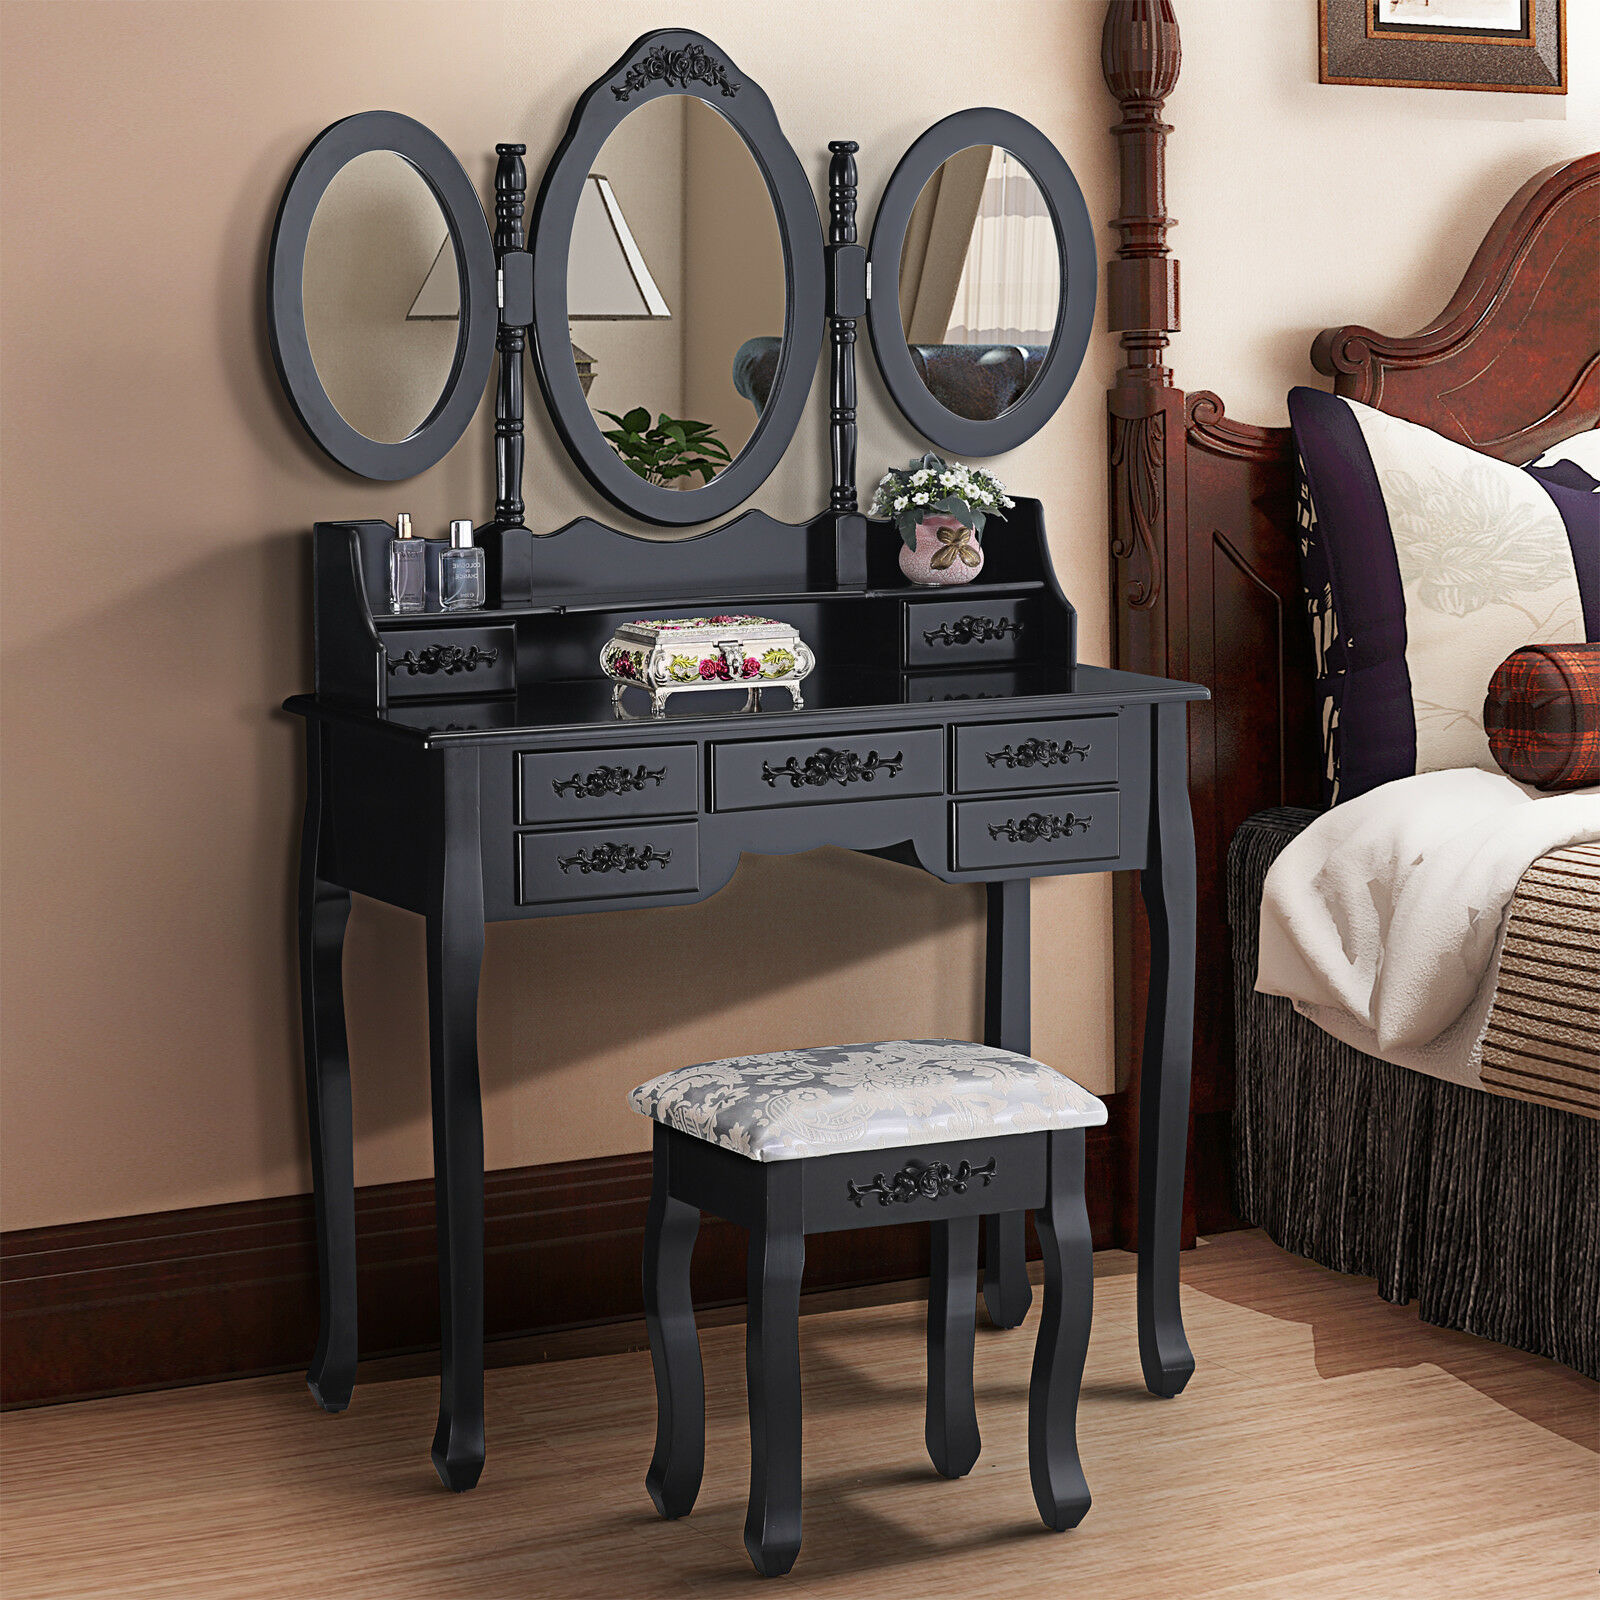 Black Dressing Table Vanity Makeup Desk Stool Set With 3 Mirrors 7 Drawers